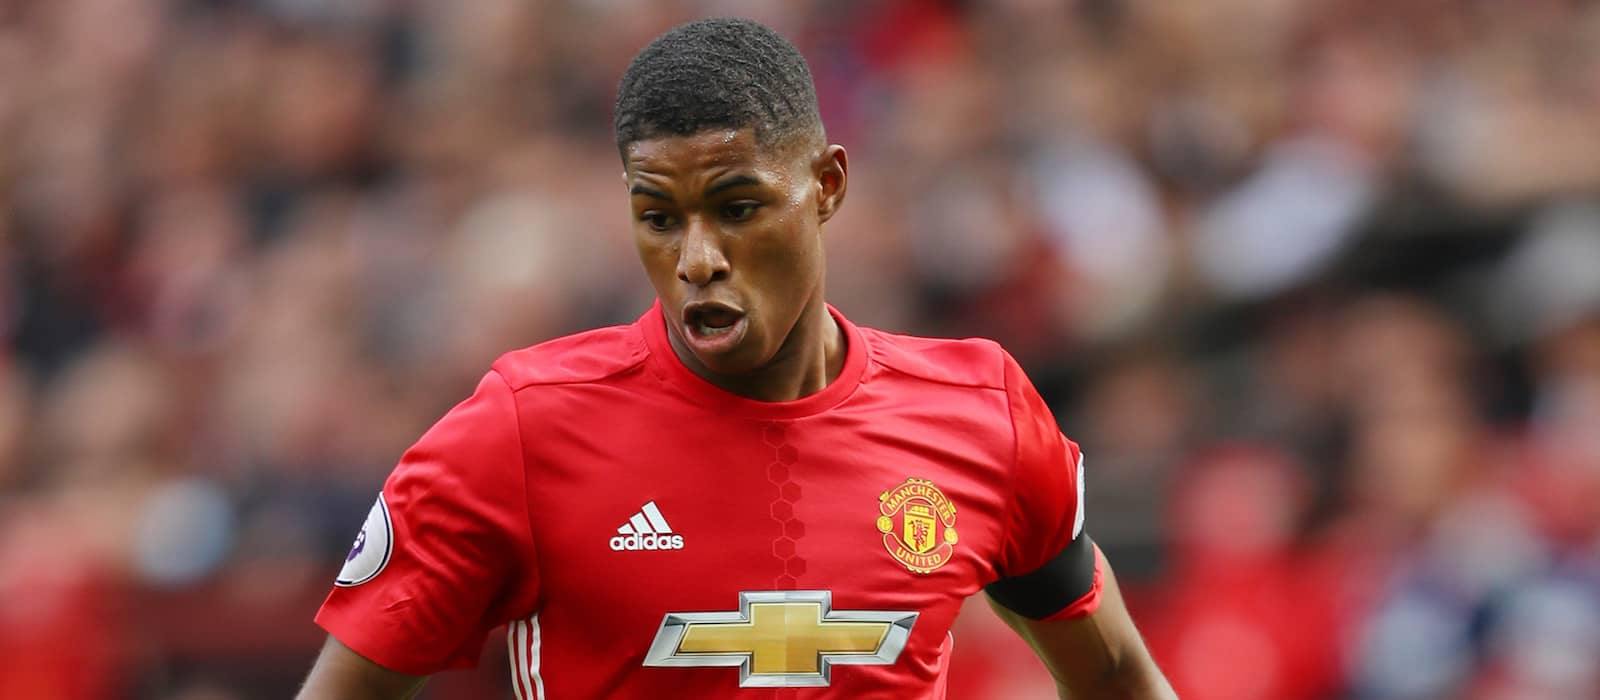 Gary Lineker reacts to Marcus Rashford's spectacular performance against West Ham